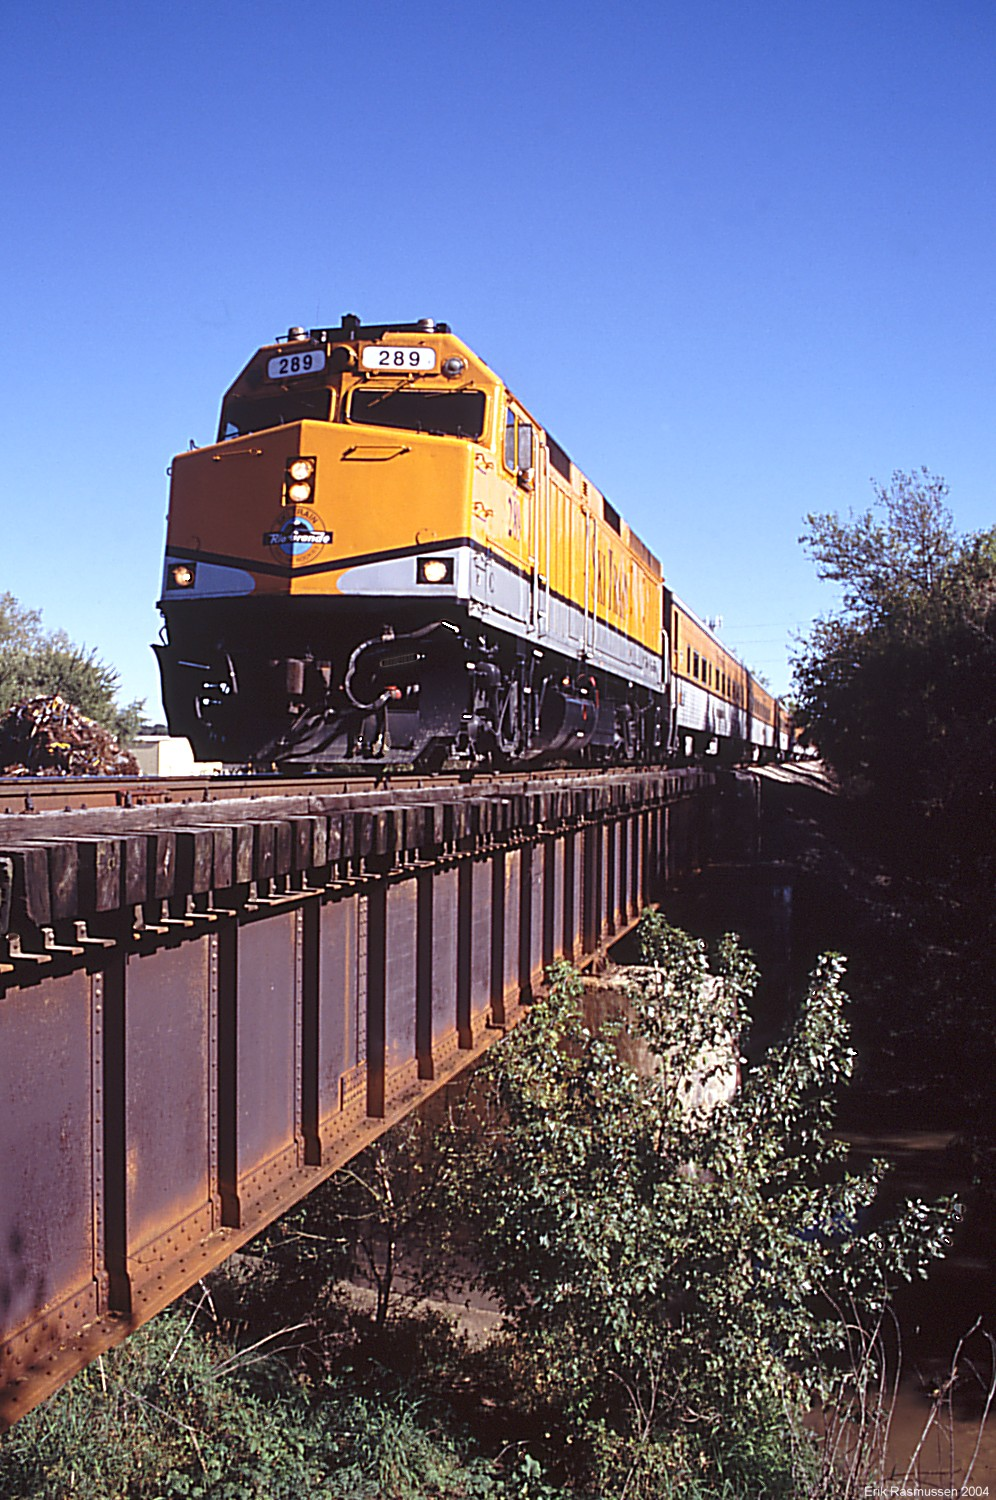 The Ski-Train is making a post-game run of the Hawkeye Express over Clear Creek in Coralville, IA on 10/2/04.